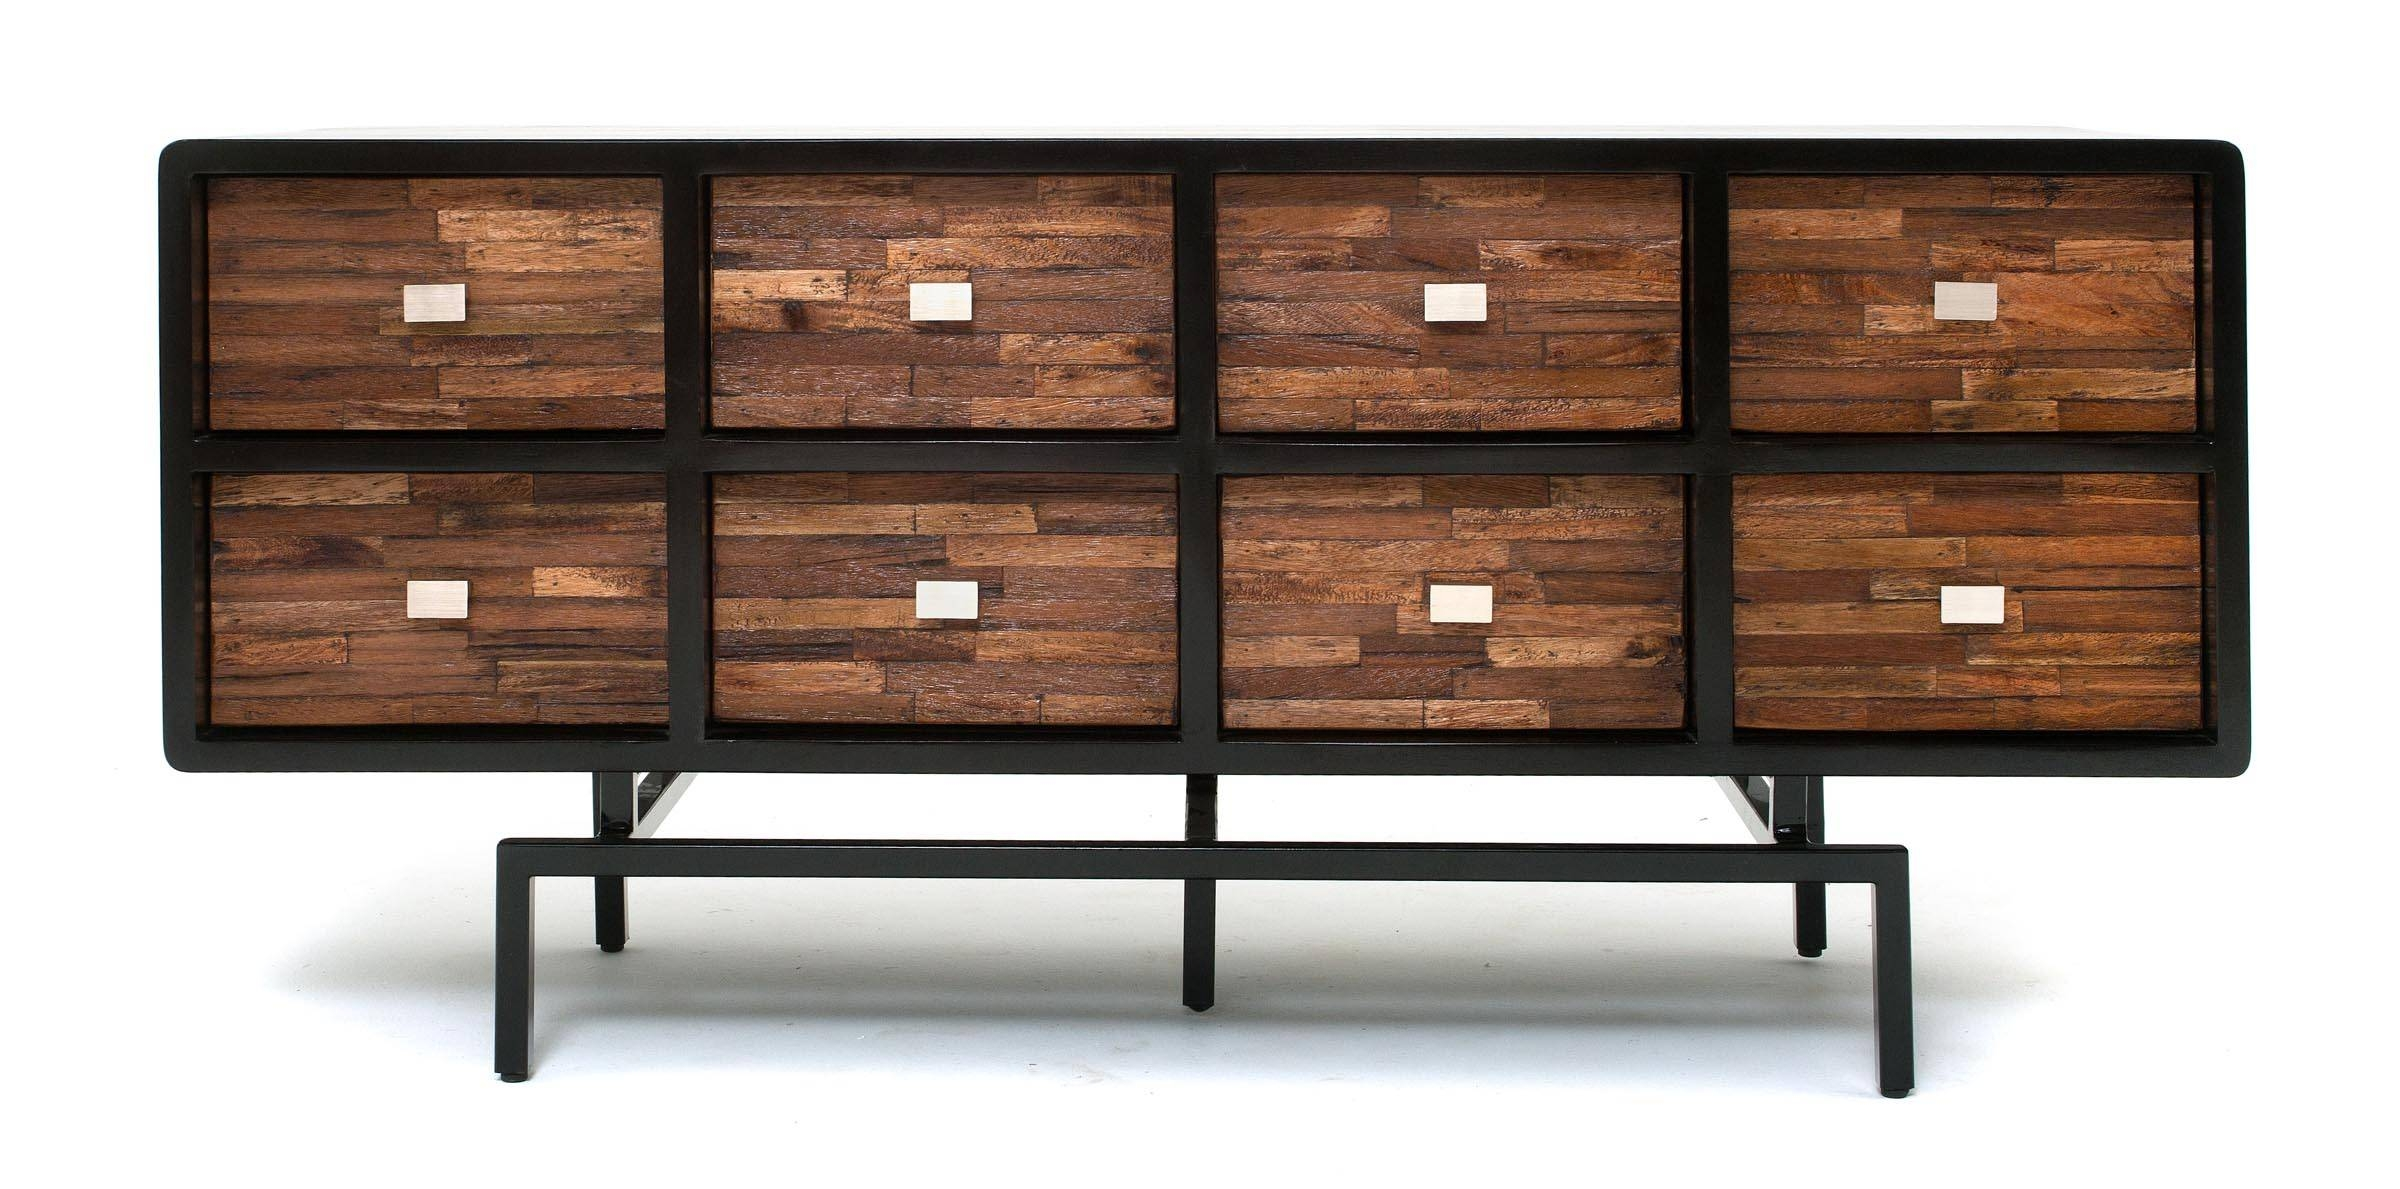 Soft Modern Furniture, Sustainable Sideboard, Reclaimed Wood throughout Modern Sideboard Furniture (Image 29 of 30)